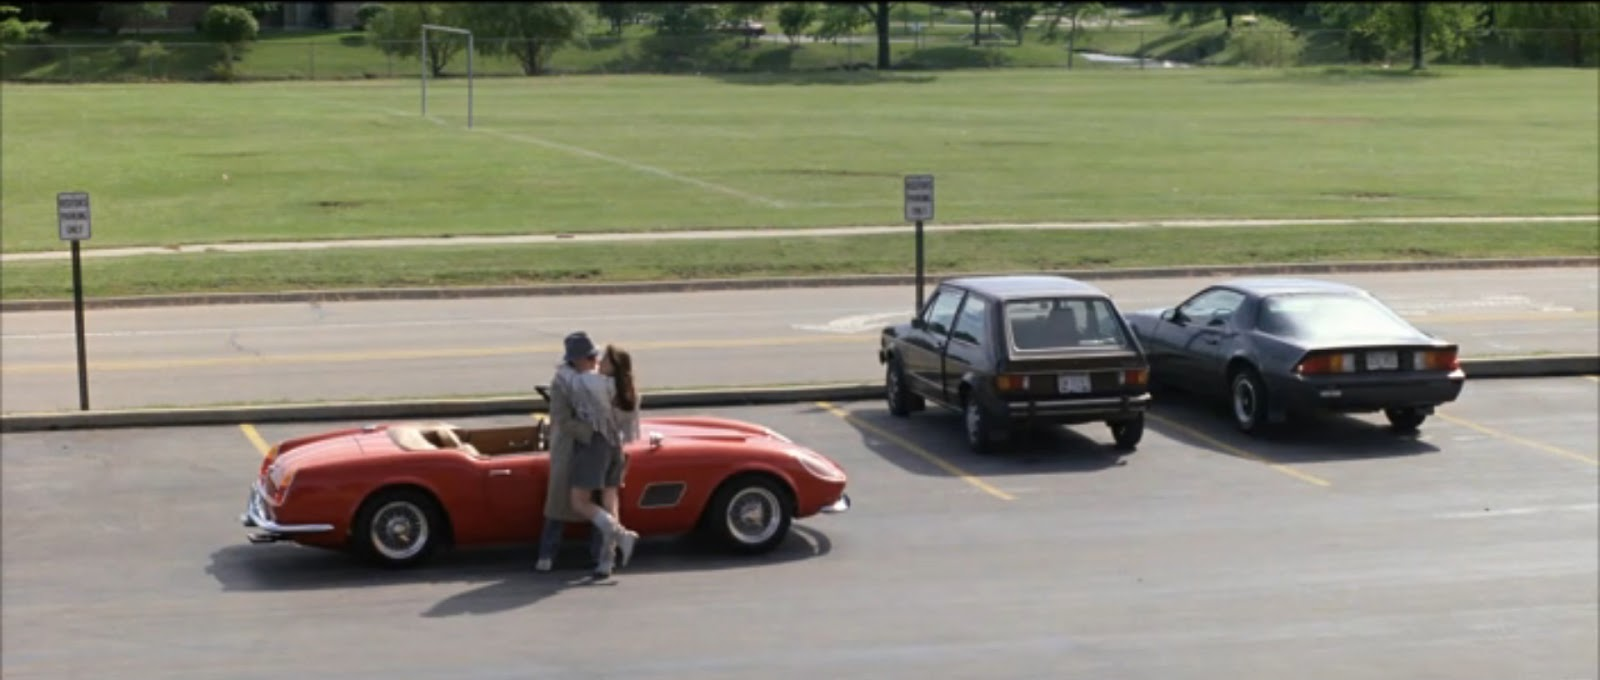 John hughes movie locations